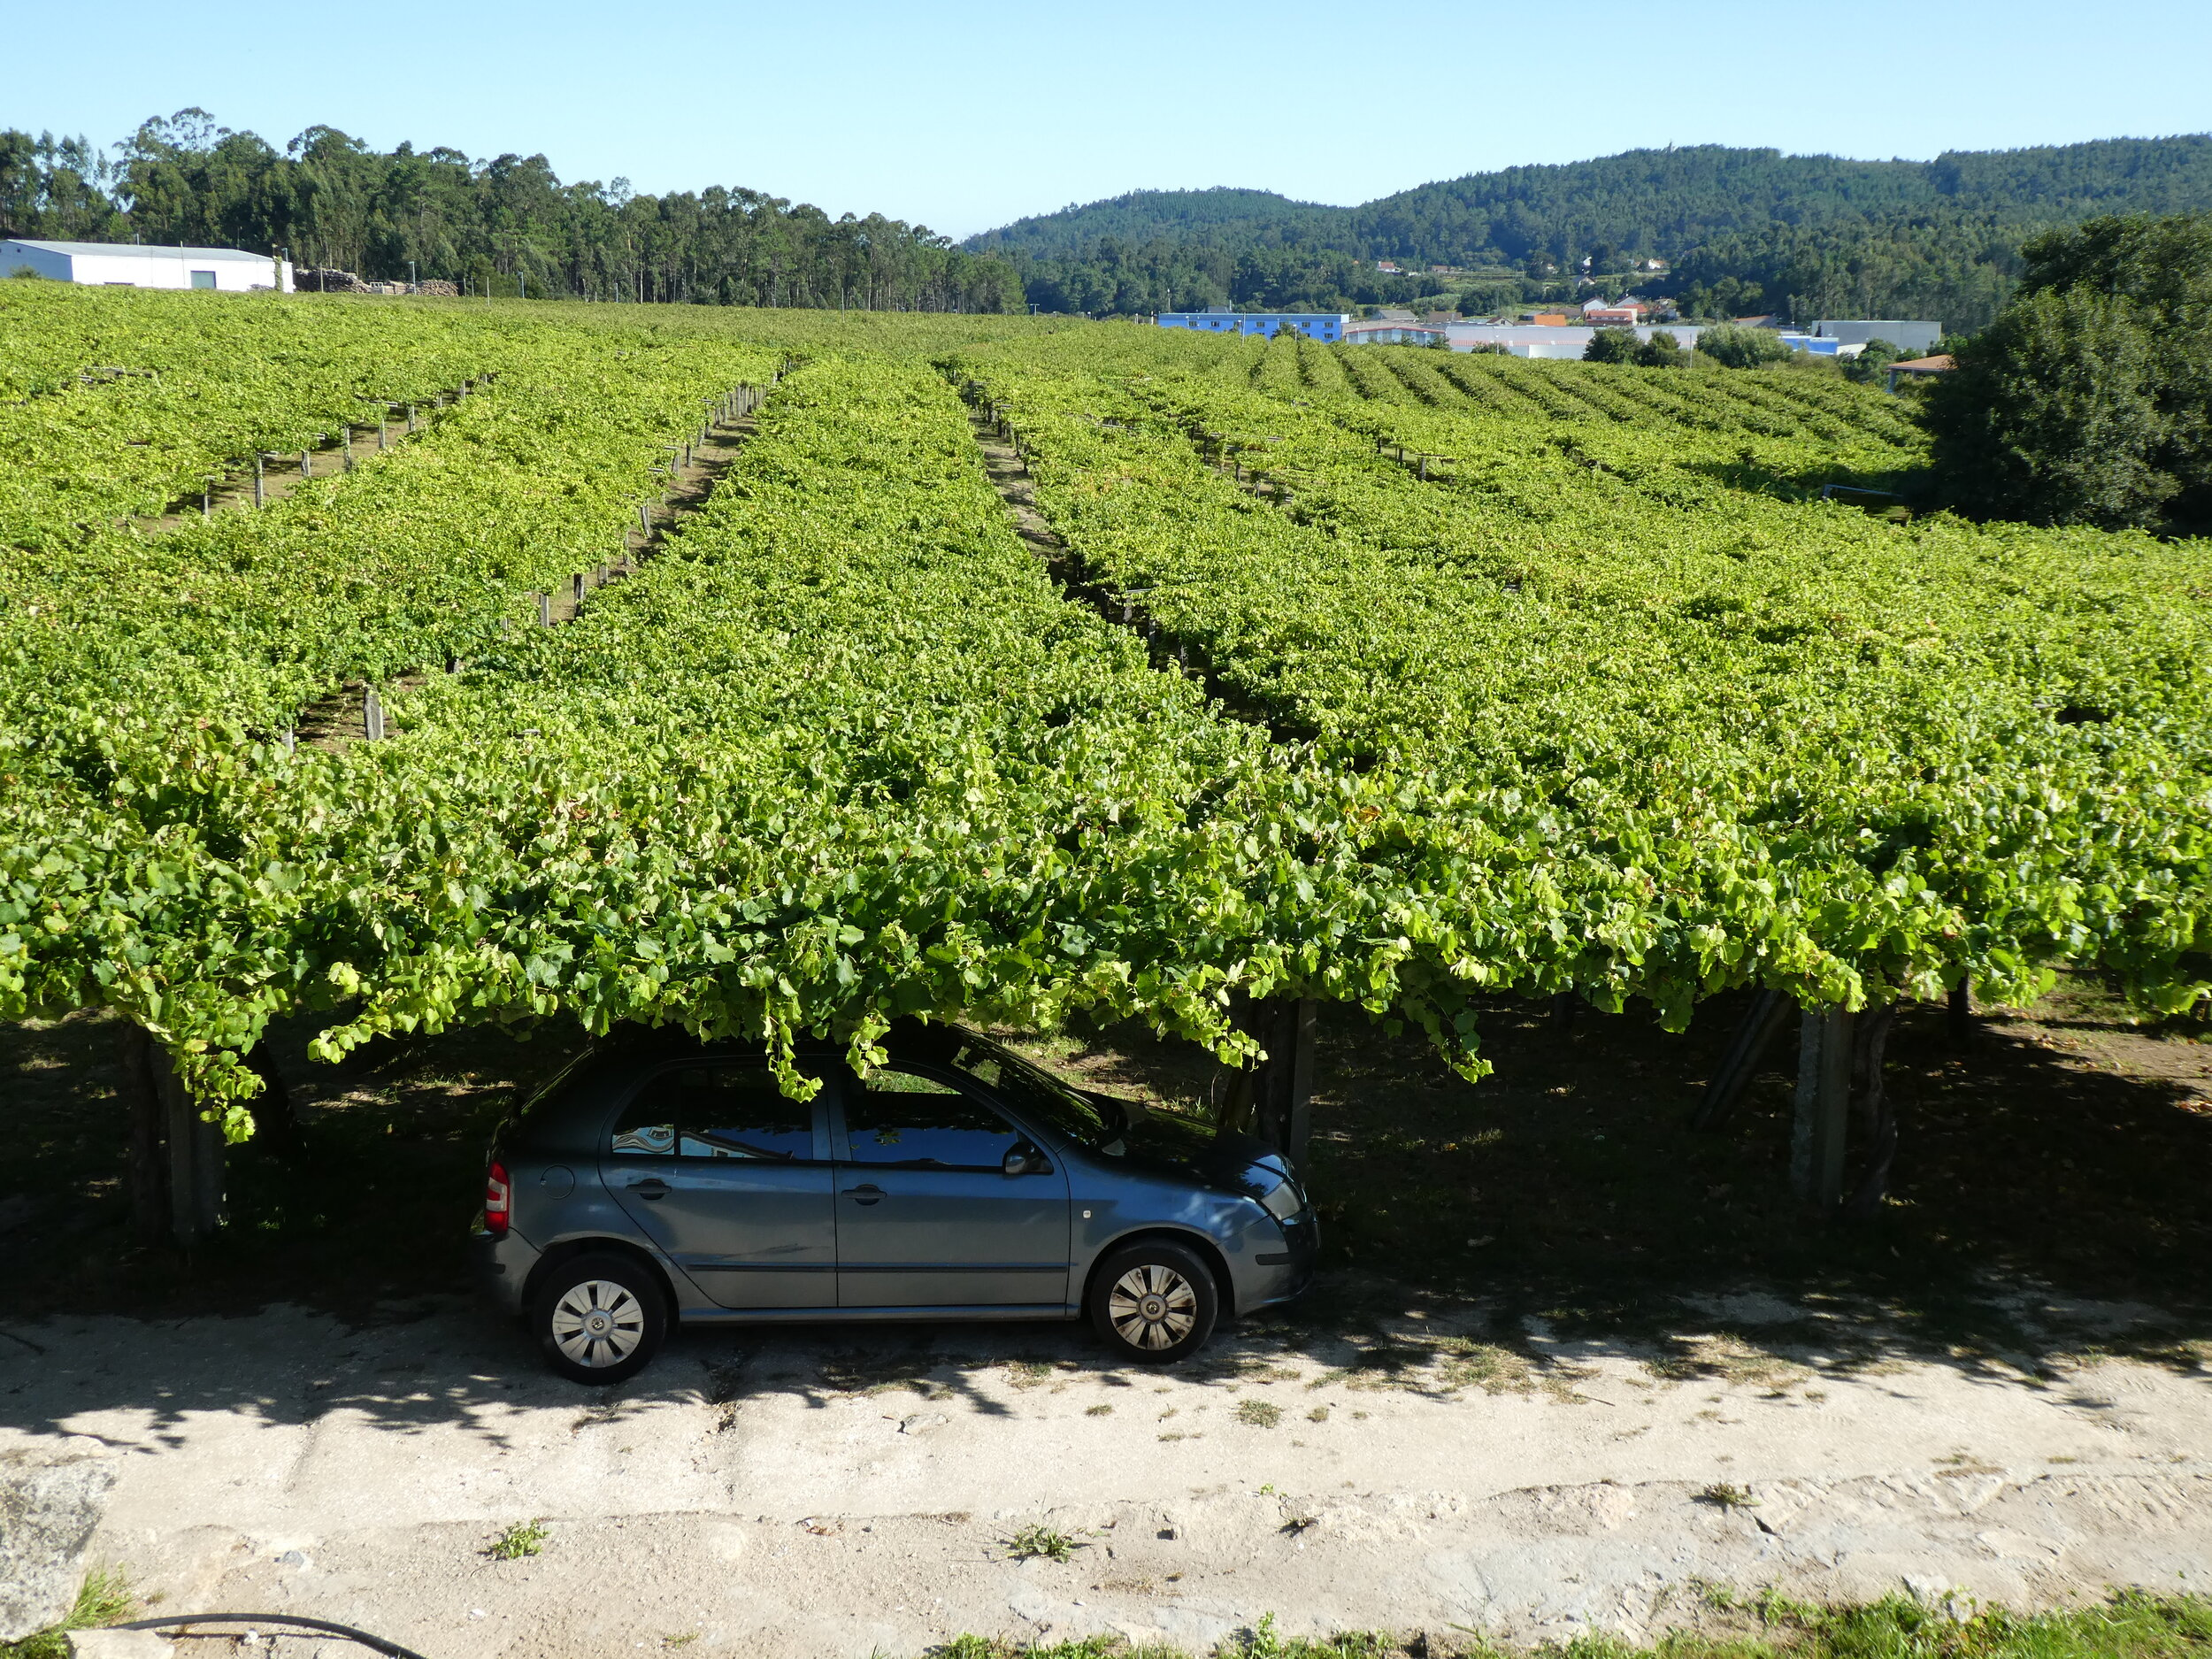 Vineyard in Galician Region of Spain. High enough to provide shade